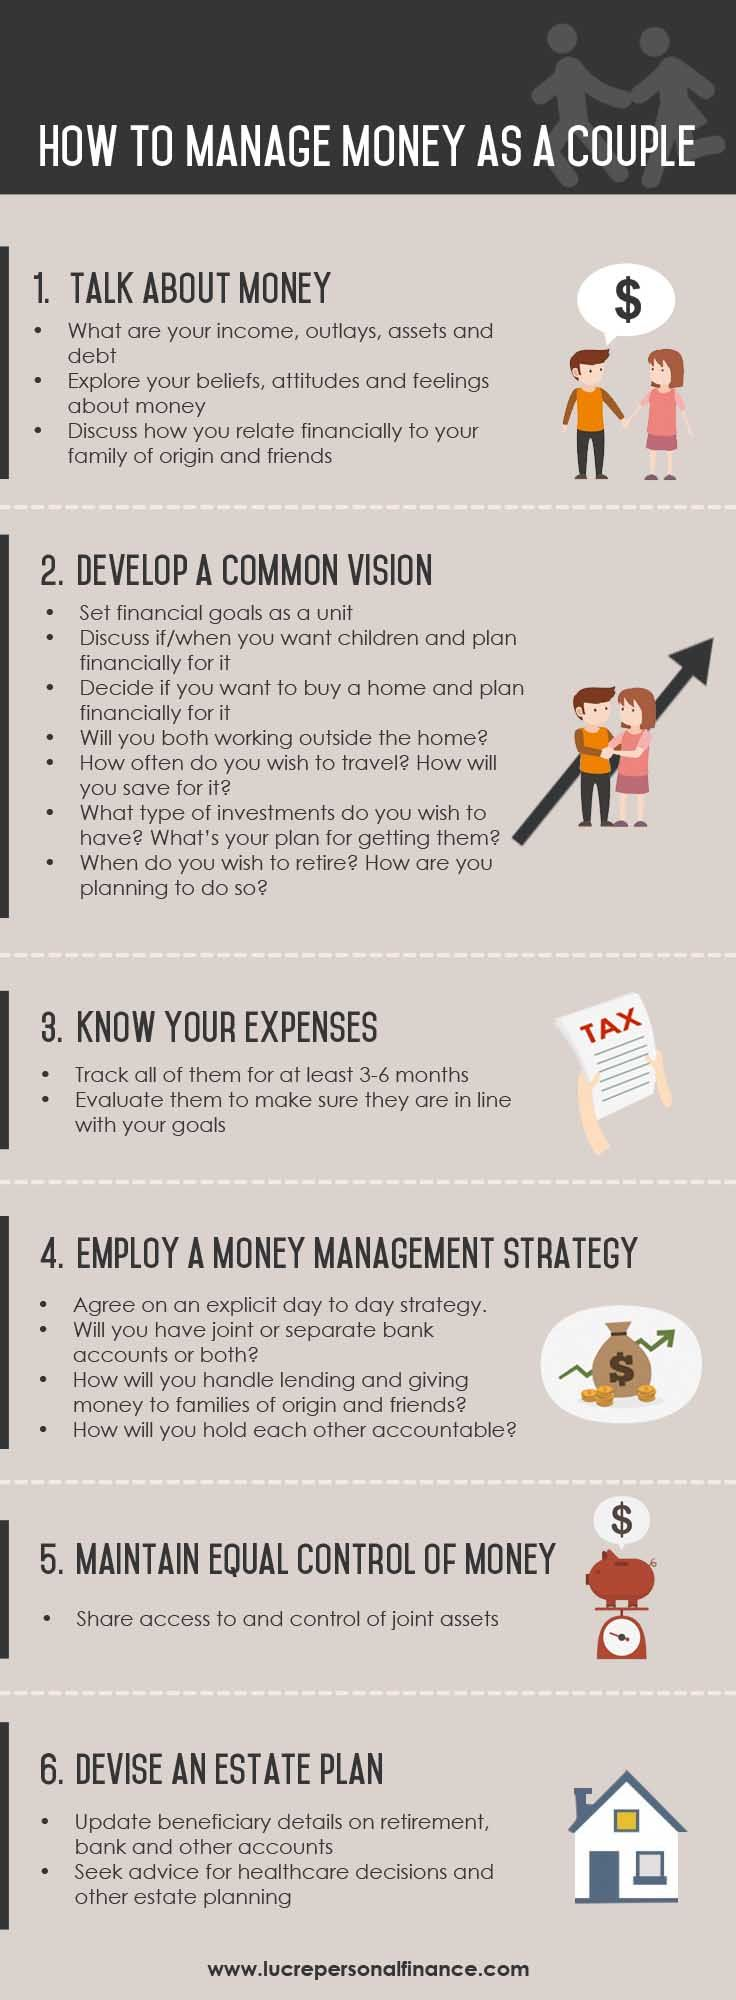 How to Manage Money as a Couple, Married or Not - 6 Tips | Finanzen ...